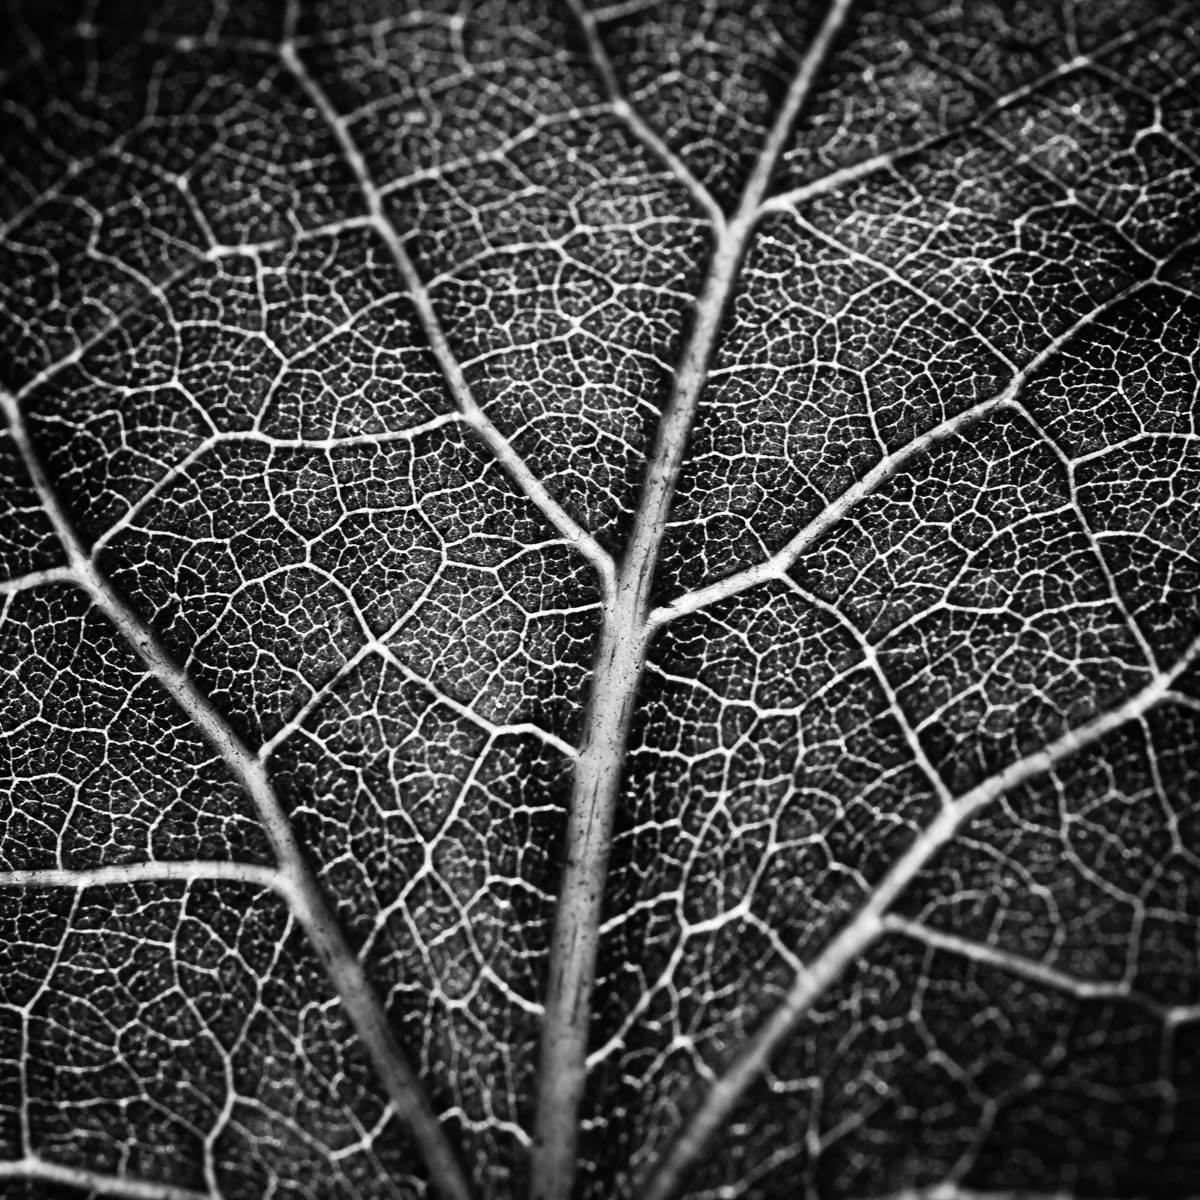 Detail of the back of a leaf, shot at the Dallas Arboretum.